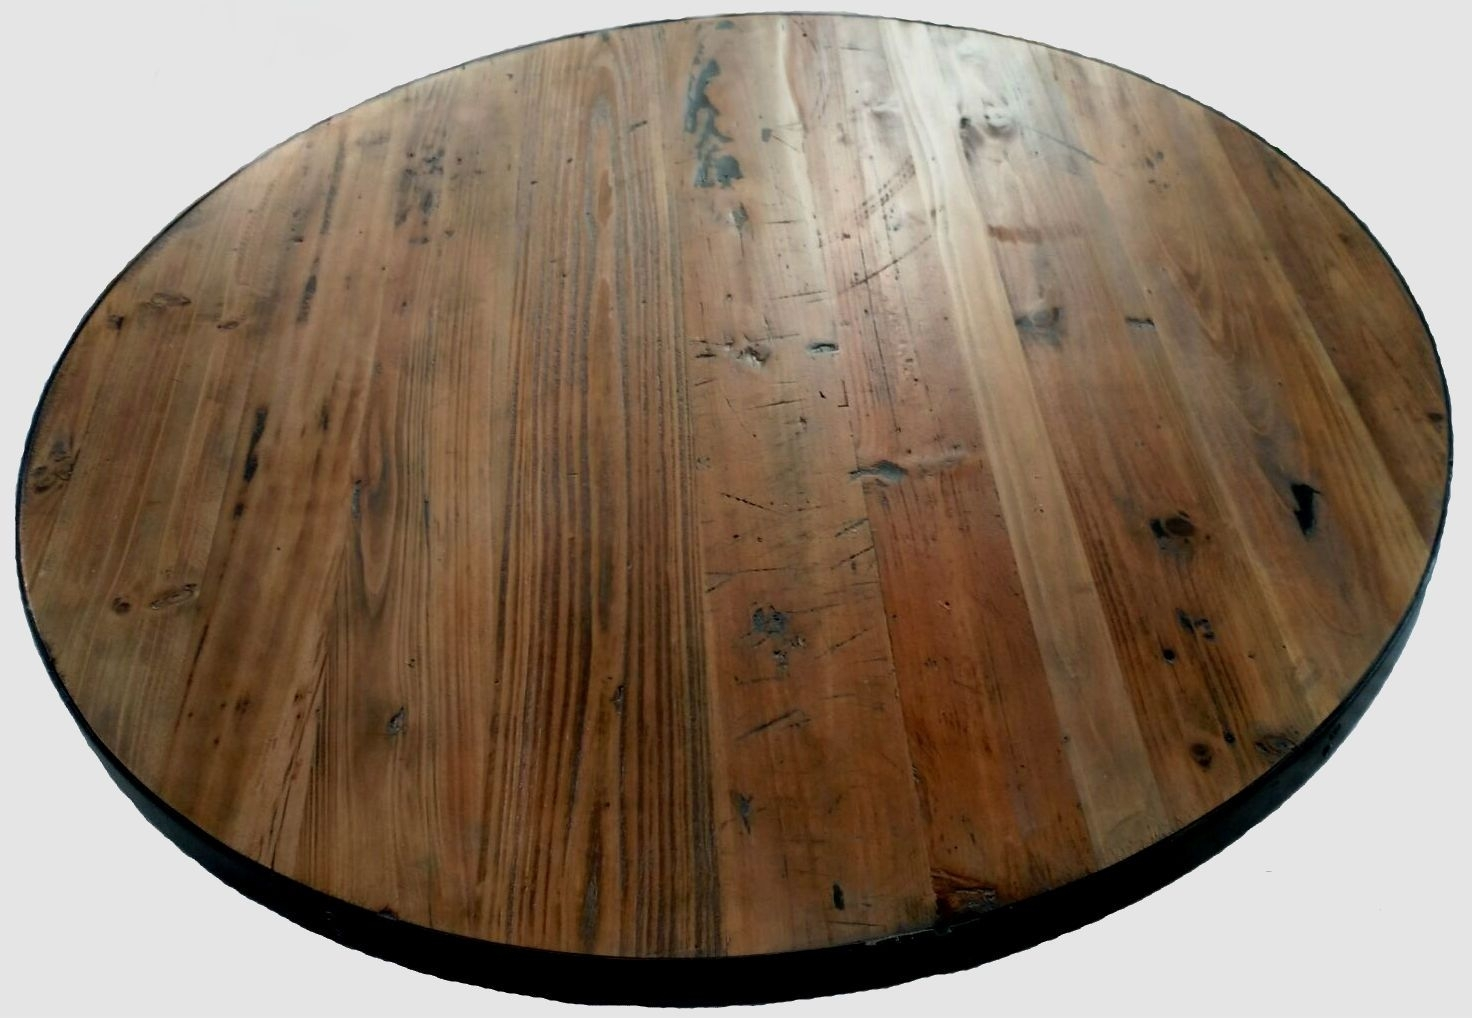 Fascinating Magnolia Home Top Tier Round Dining Tablejoanna For Best And Newest Magnolia Home Top Tier Round Dining Tables (Image 4 of 20)